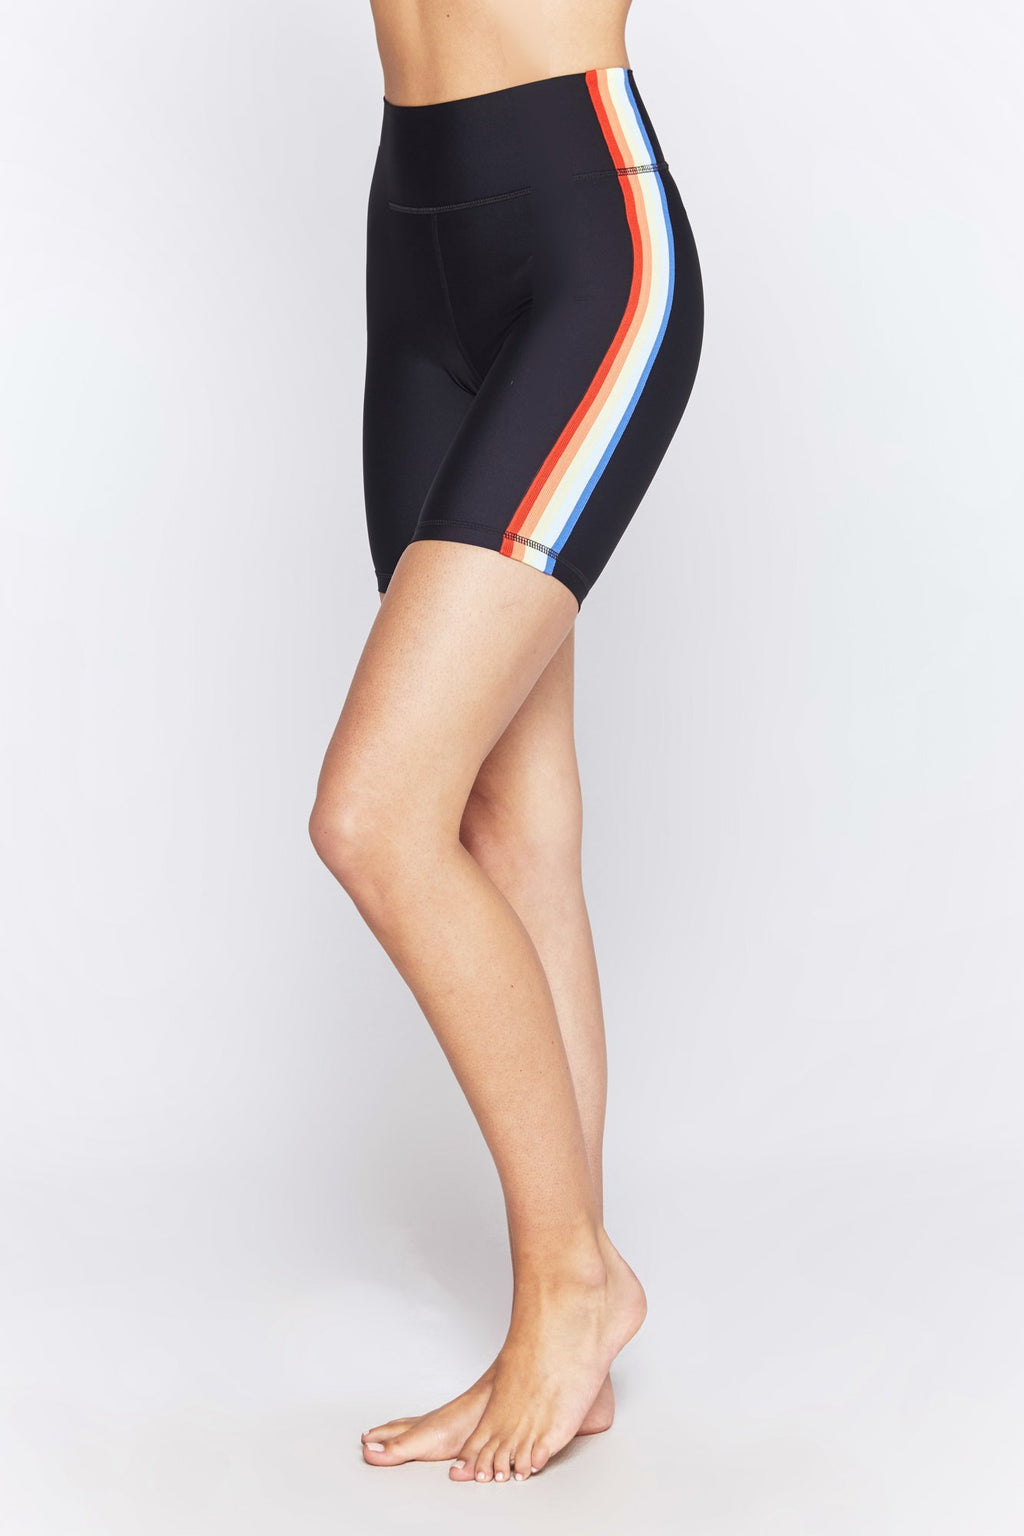 Model is wearing black athletic spiritual gangster biker shorts. The gangster biker shorts in black with a 5-colour rainbow stripe running vertically down the side seam hem on both sides.